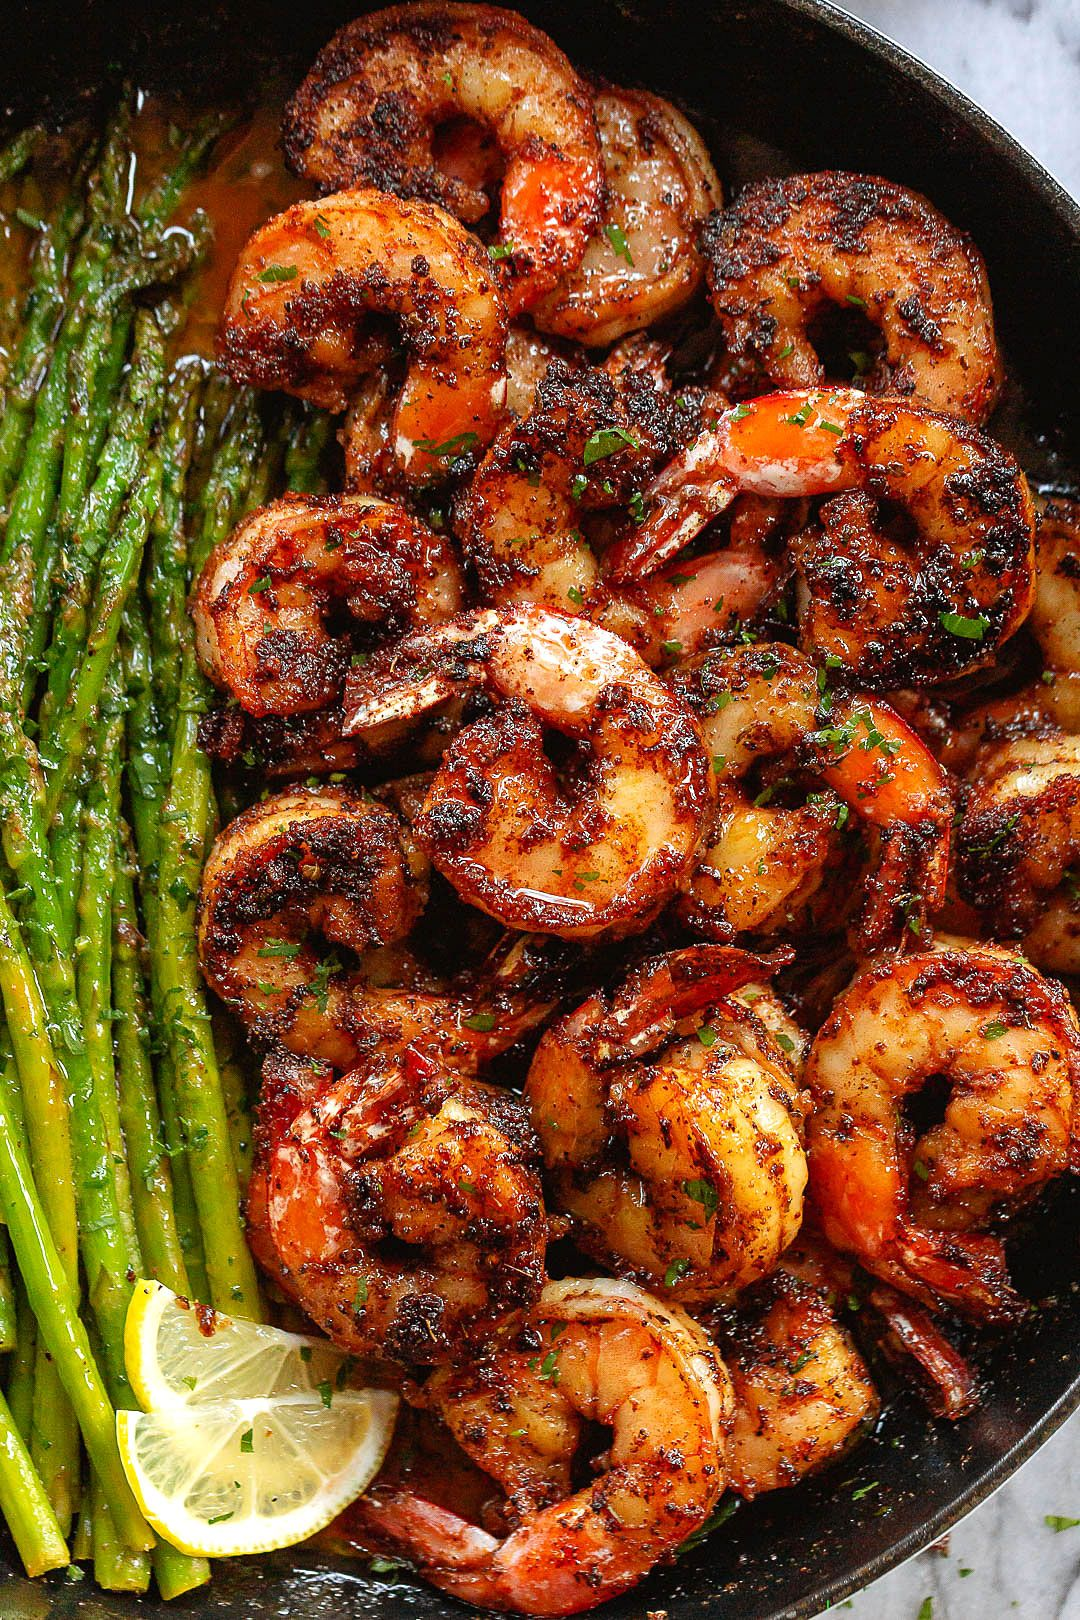 20-Minute Blackened Shrimp and Asparagus Skillet #shrimprecipes